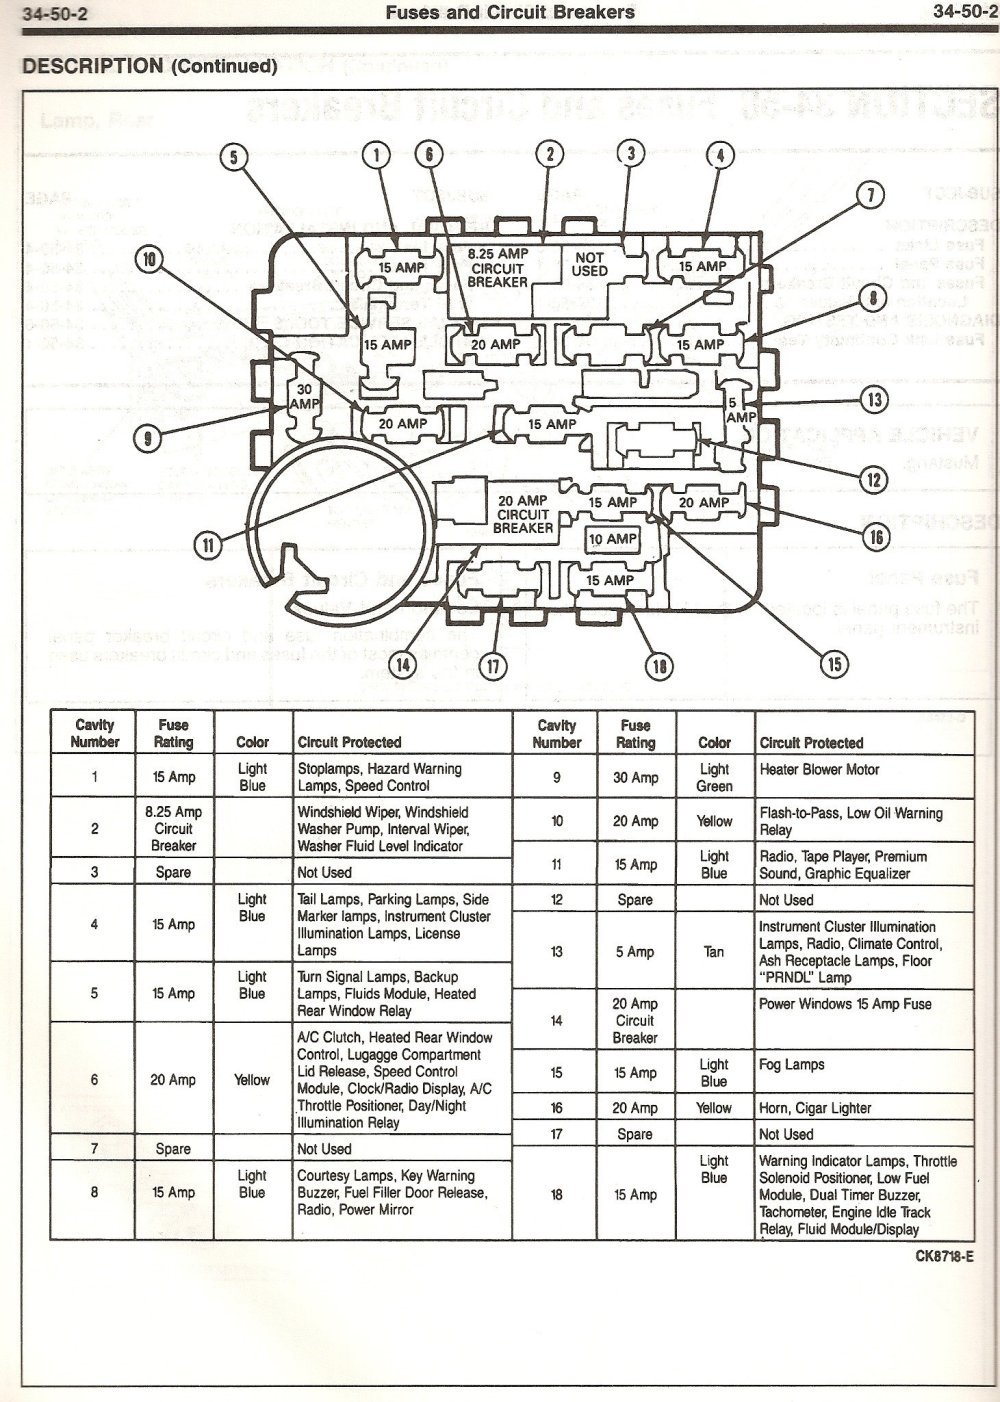 medium resolution of tags 2006 mustang fuse diagram 2006 ford van fuse box diagram 2006 ford mustang fuse box diagram 2006 ford e350 fuse diagram 2006 ford escape fuse box